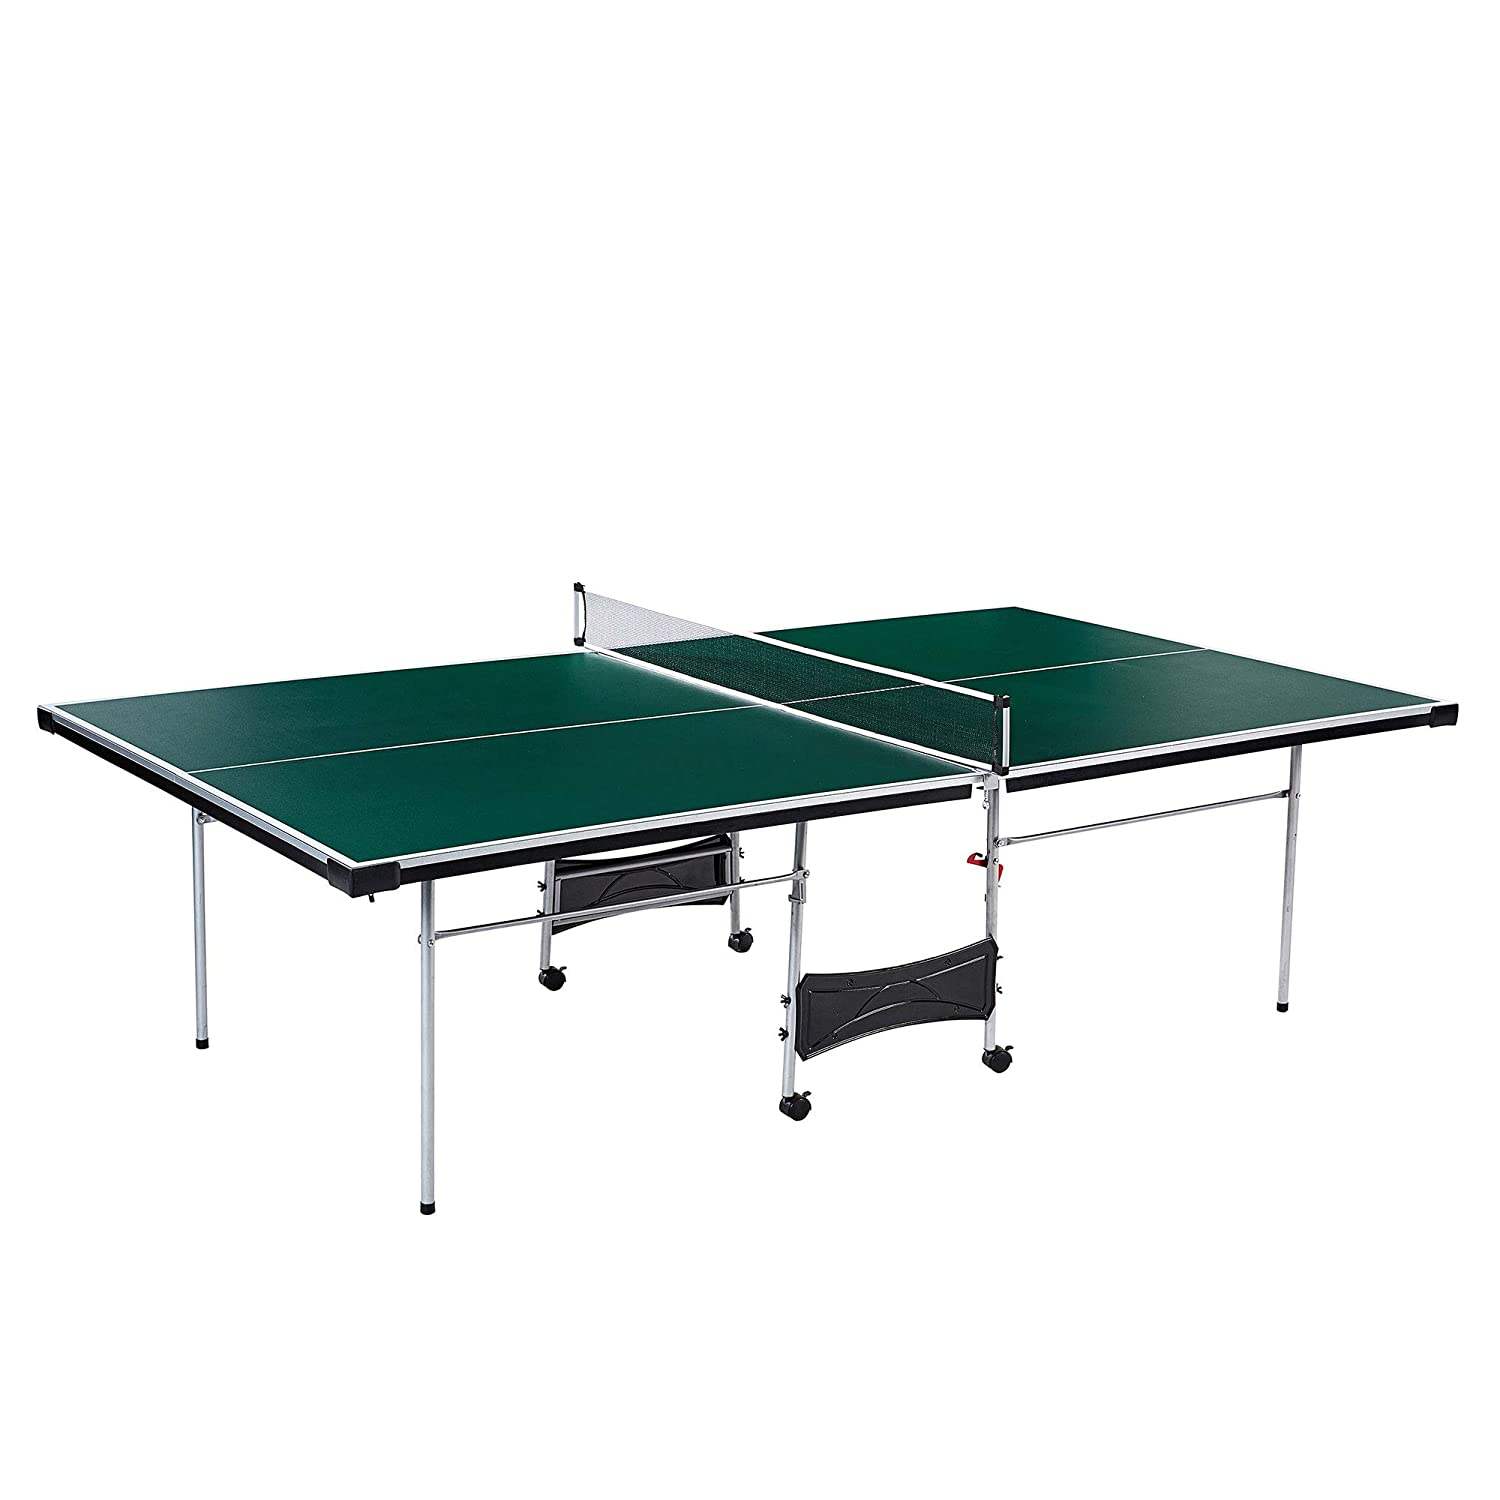 Merveilleux Amazon.com : Lancaster 4 Piece Official Size Indoor Folding Table Tennis  Ping Pong Game Table : Sports U0026 Outdoors